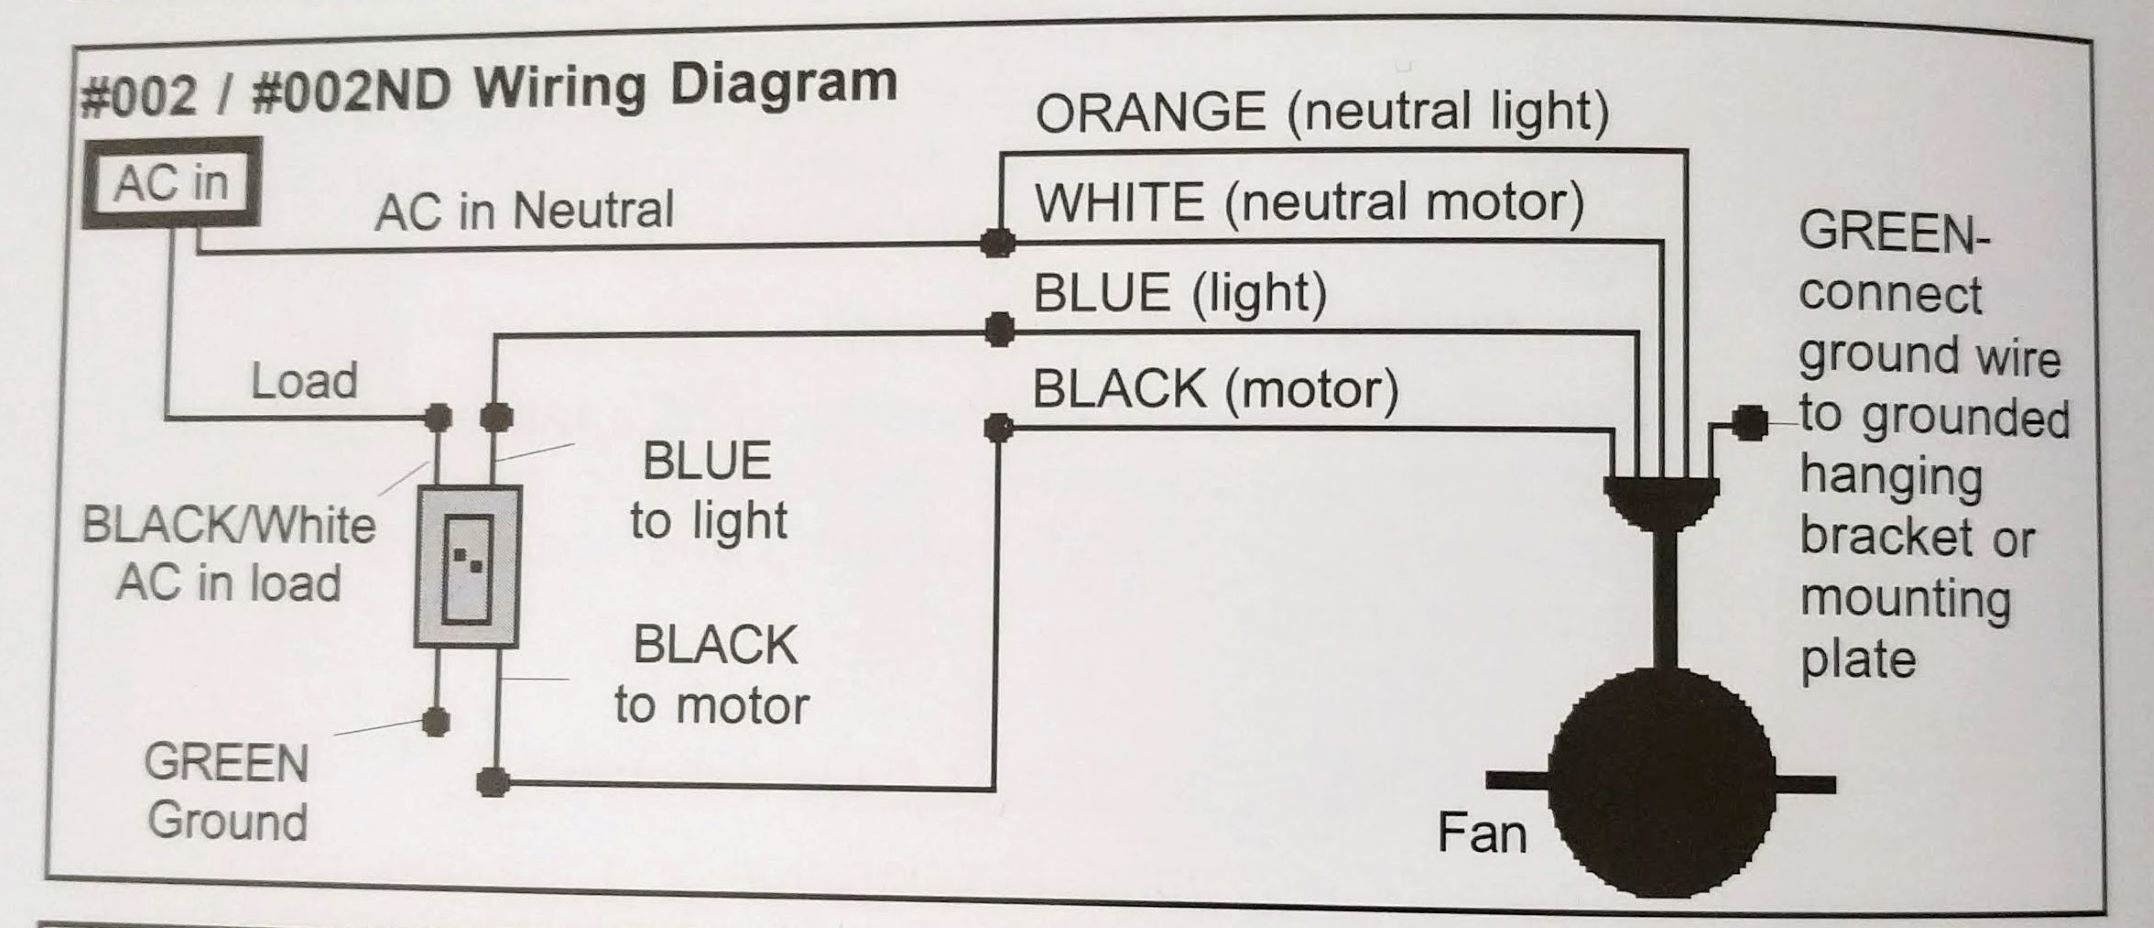 wiring diagram of a ceiling fan double light switch with black white red green in box this is the directions i received